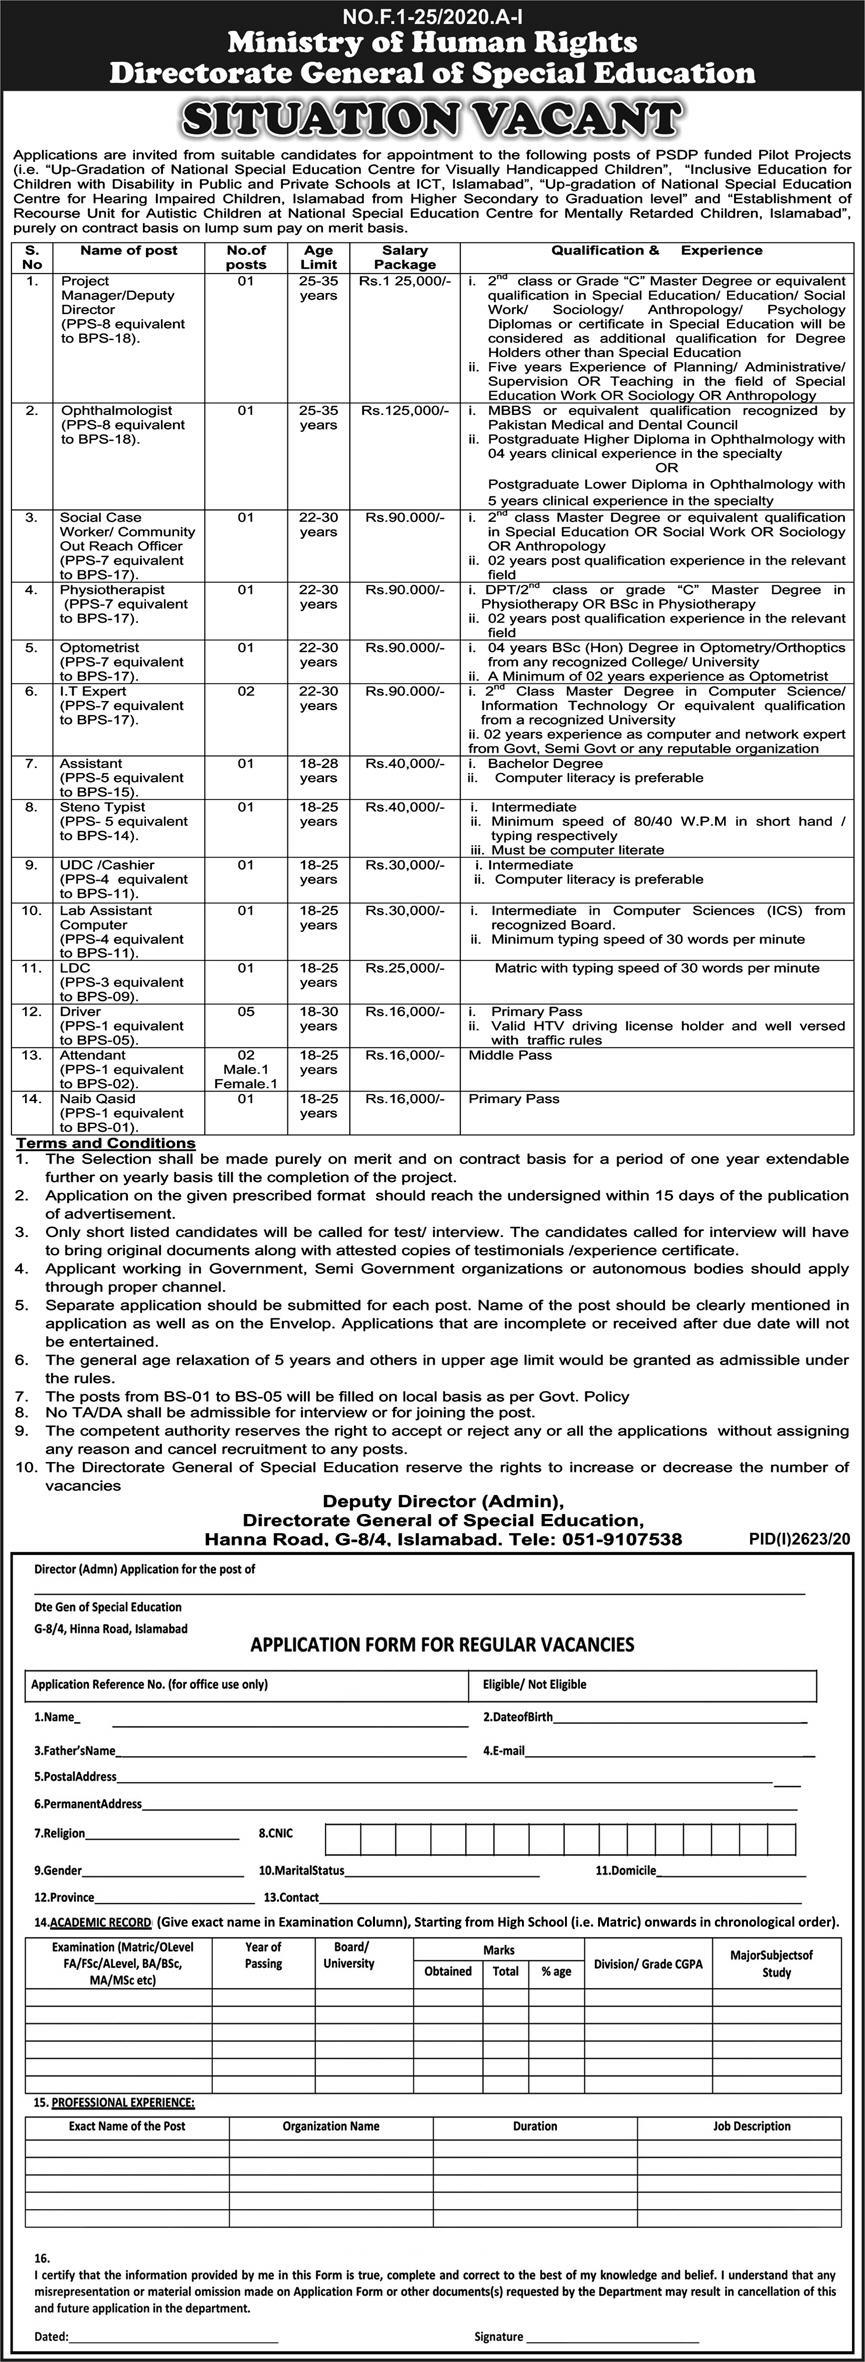 Jobs in Ministry of Human Rights November 2020